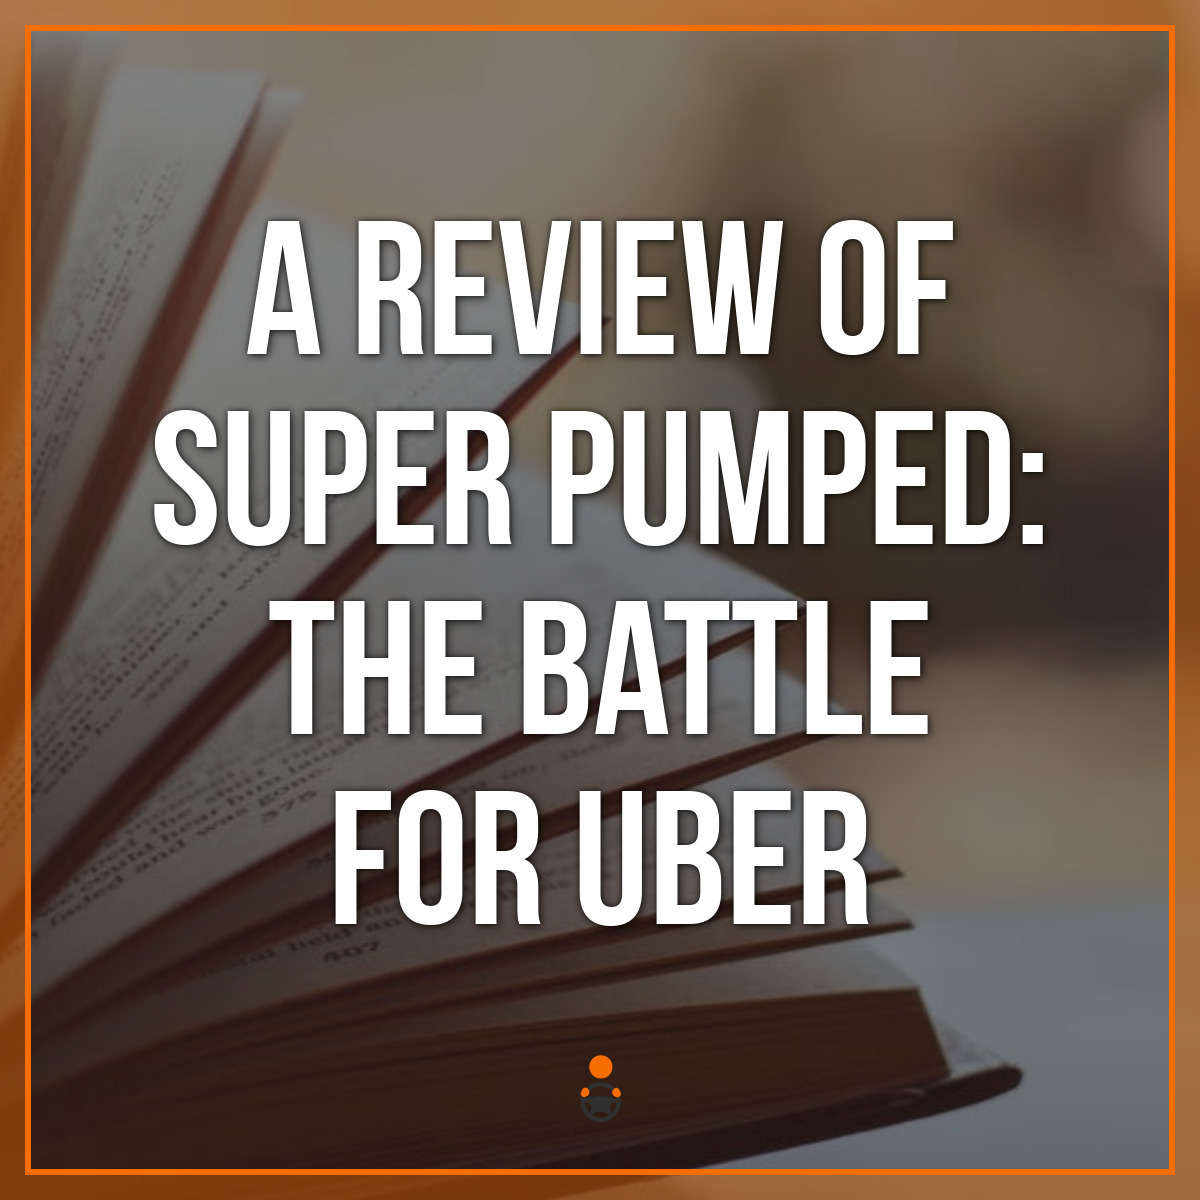 A Review of Super Pumped: The Battle for Uber